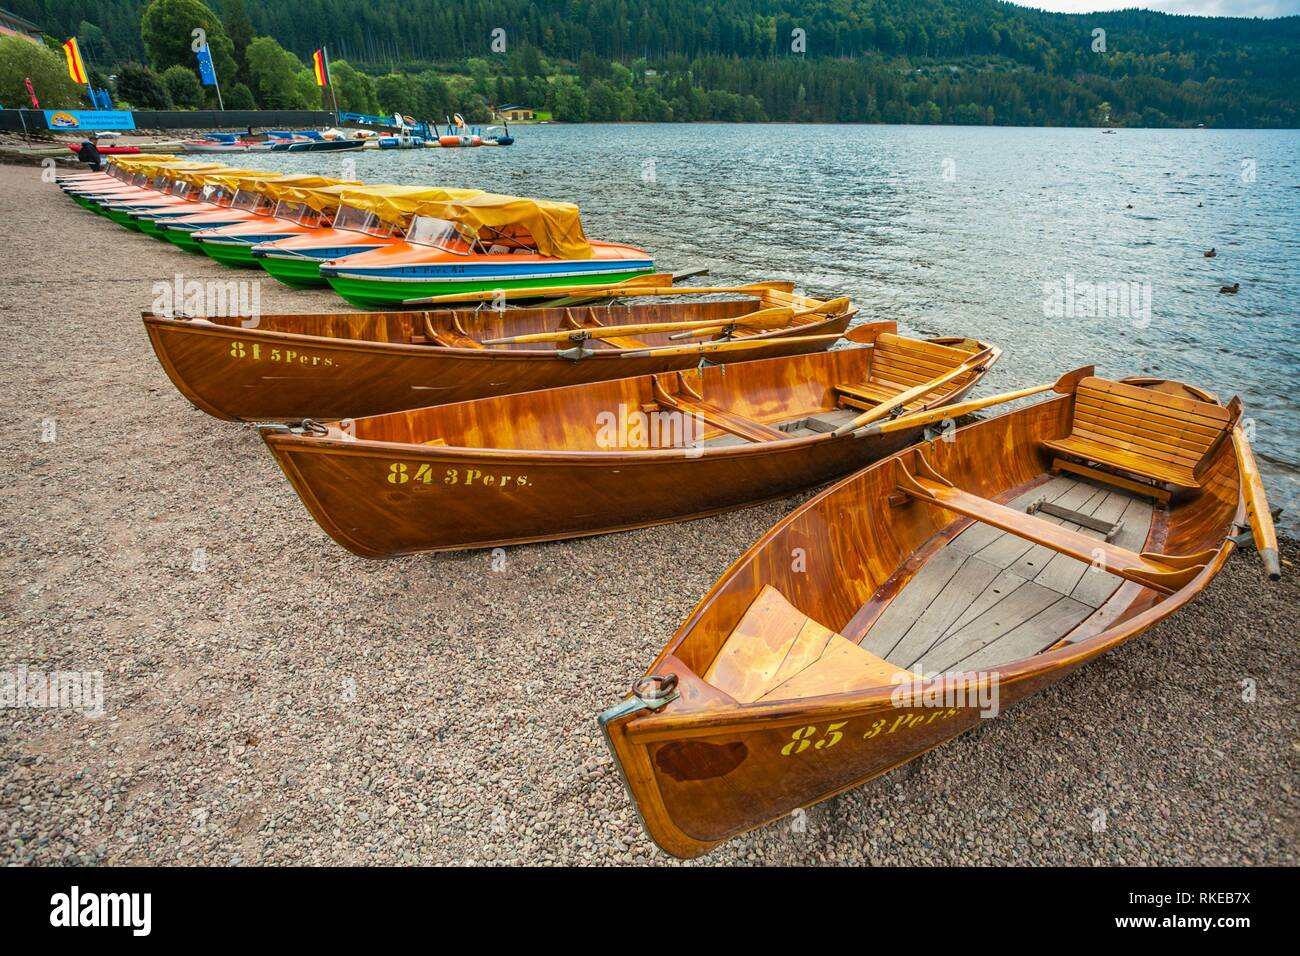 Des bateaux d'Aviron.lac de Titisee. Titisee. Titisee-Neustadt. Forêt-Noire. Baden Wurtemberg. L'Allemagne. L'Europe Photo Stock